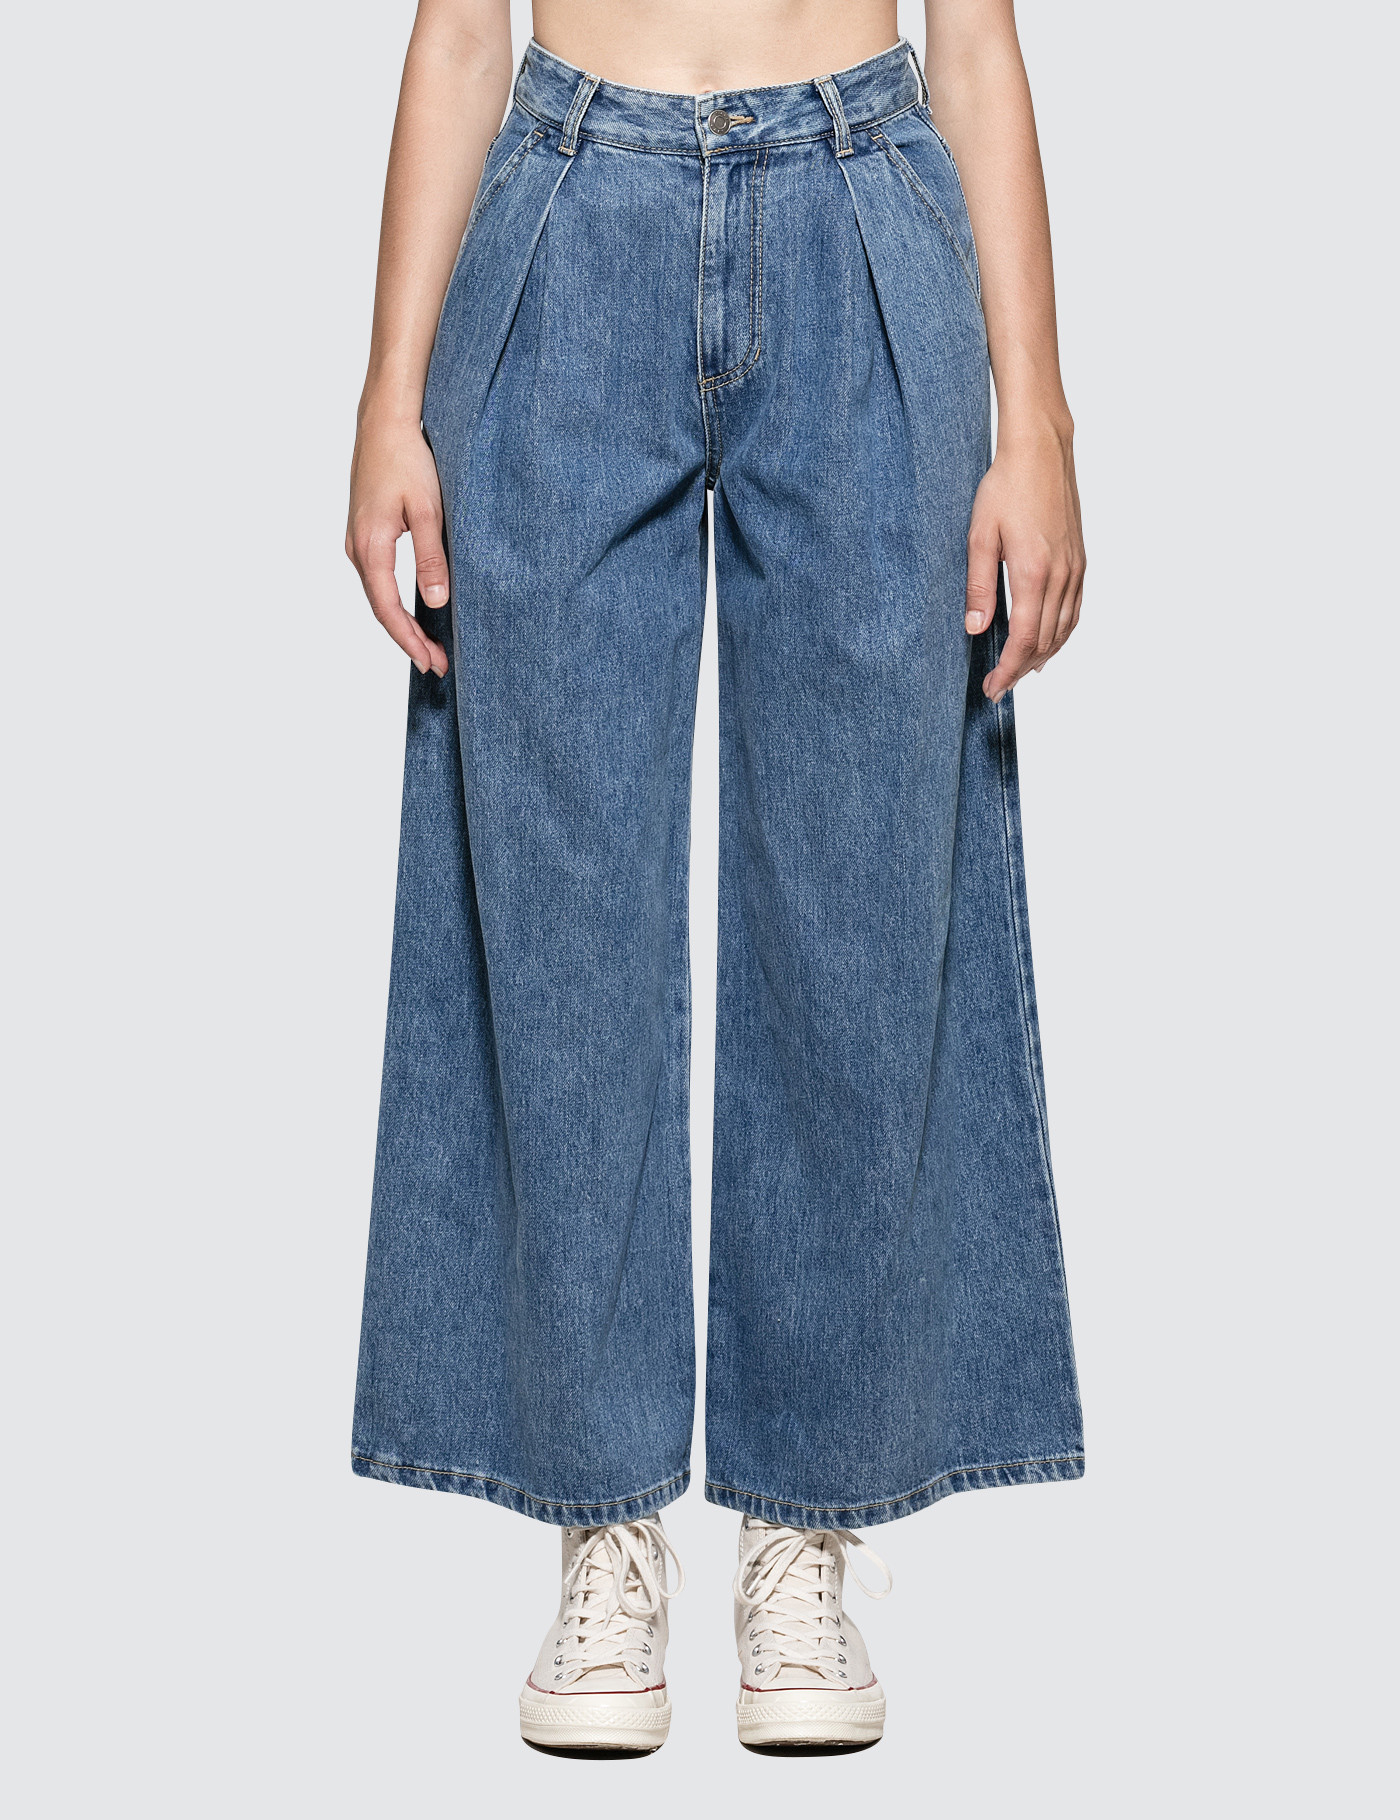 6fdc120f4a07b4 Buy Original SJYP Wide-fit Jeans at Indonesia